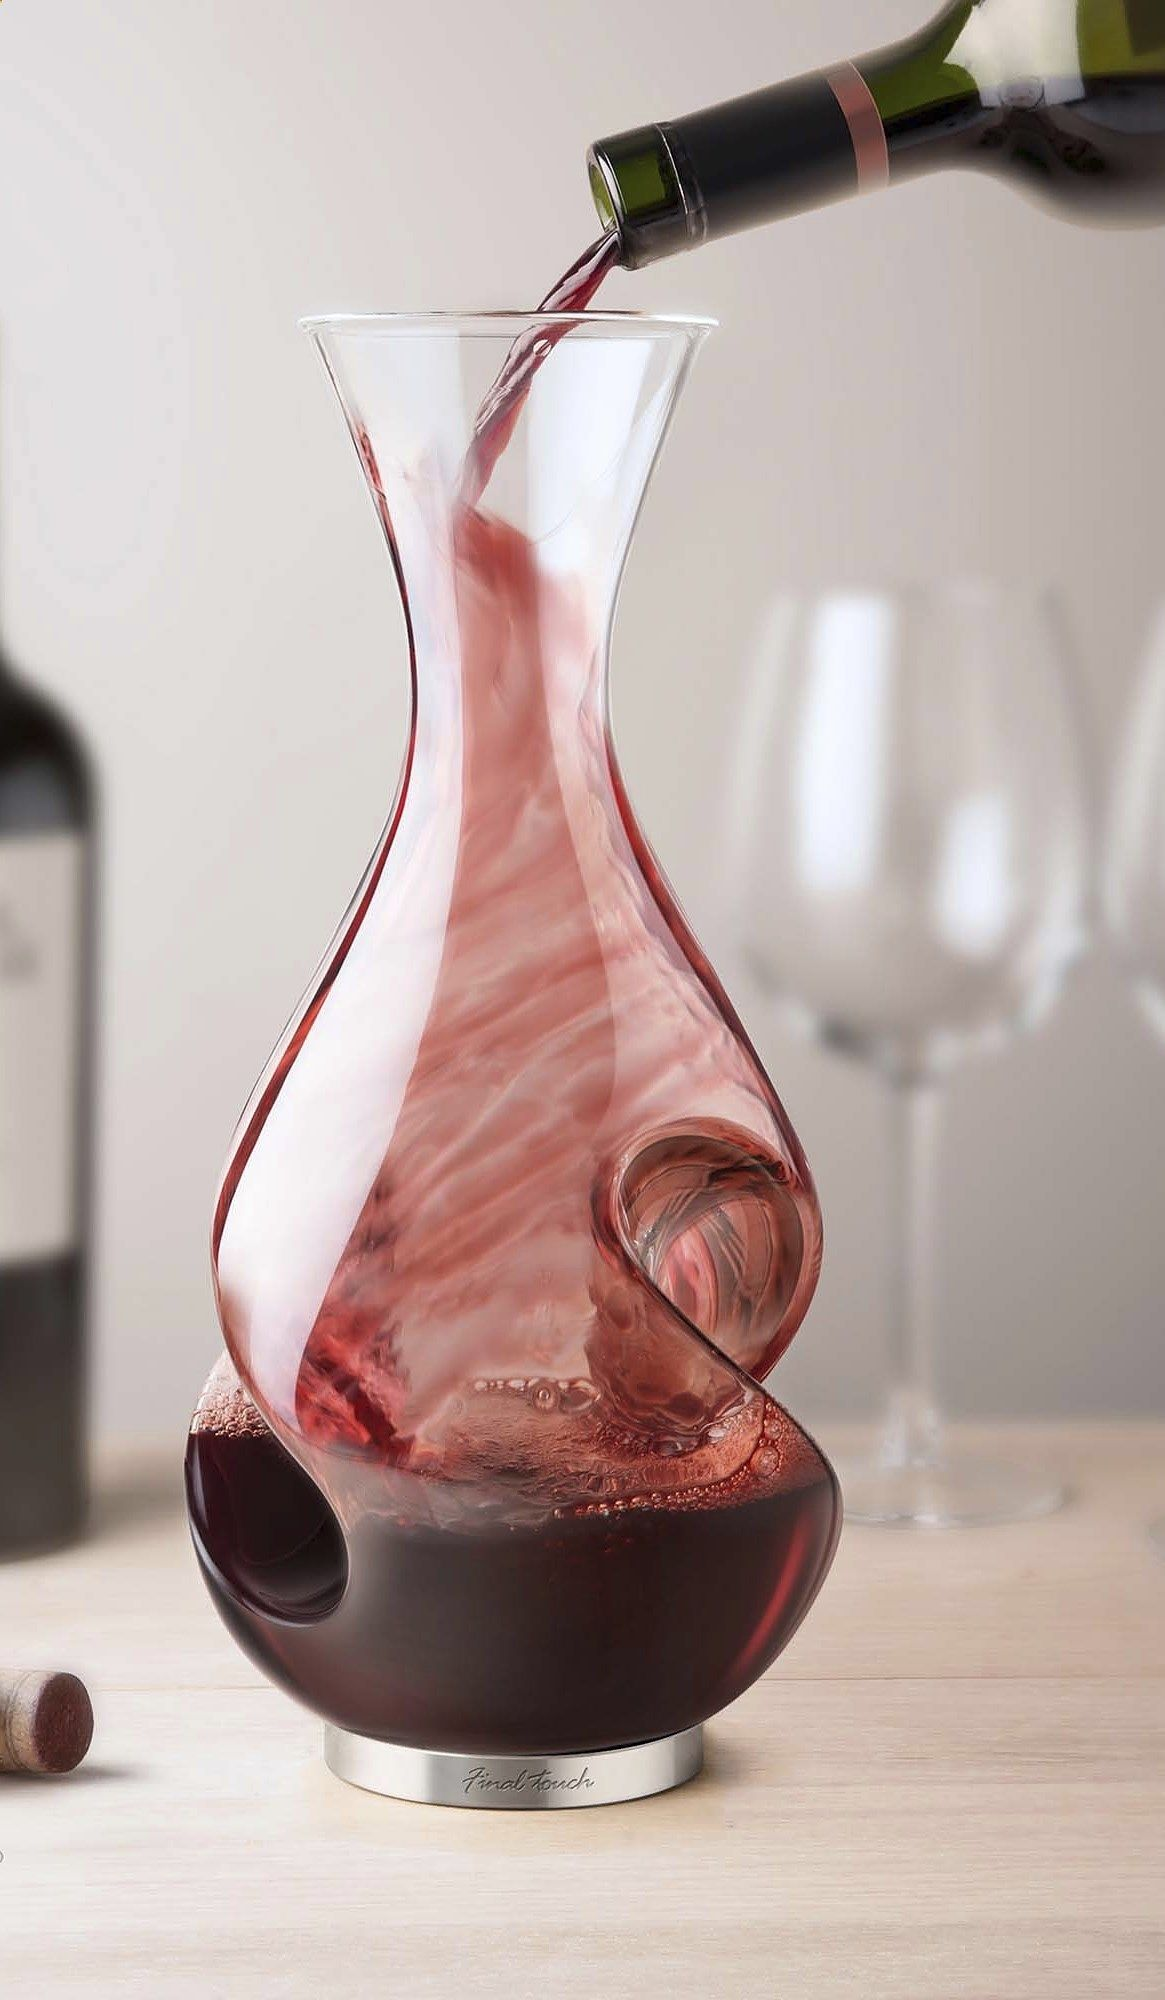 Enhance The Flavor And The Experience Of Drinking Wine With The Lgrand Conundrum Wine Decanter And Aerator Wine Carafe Decanter Wine Aerators